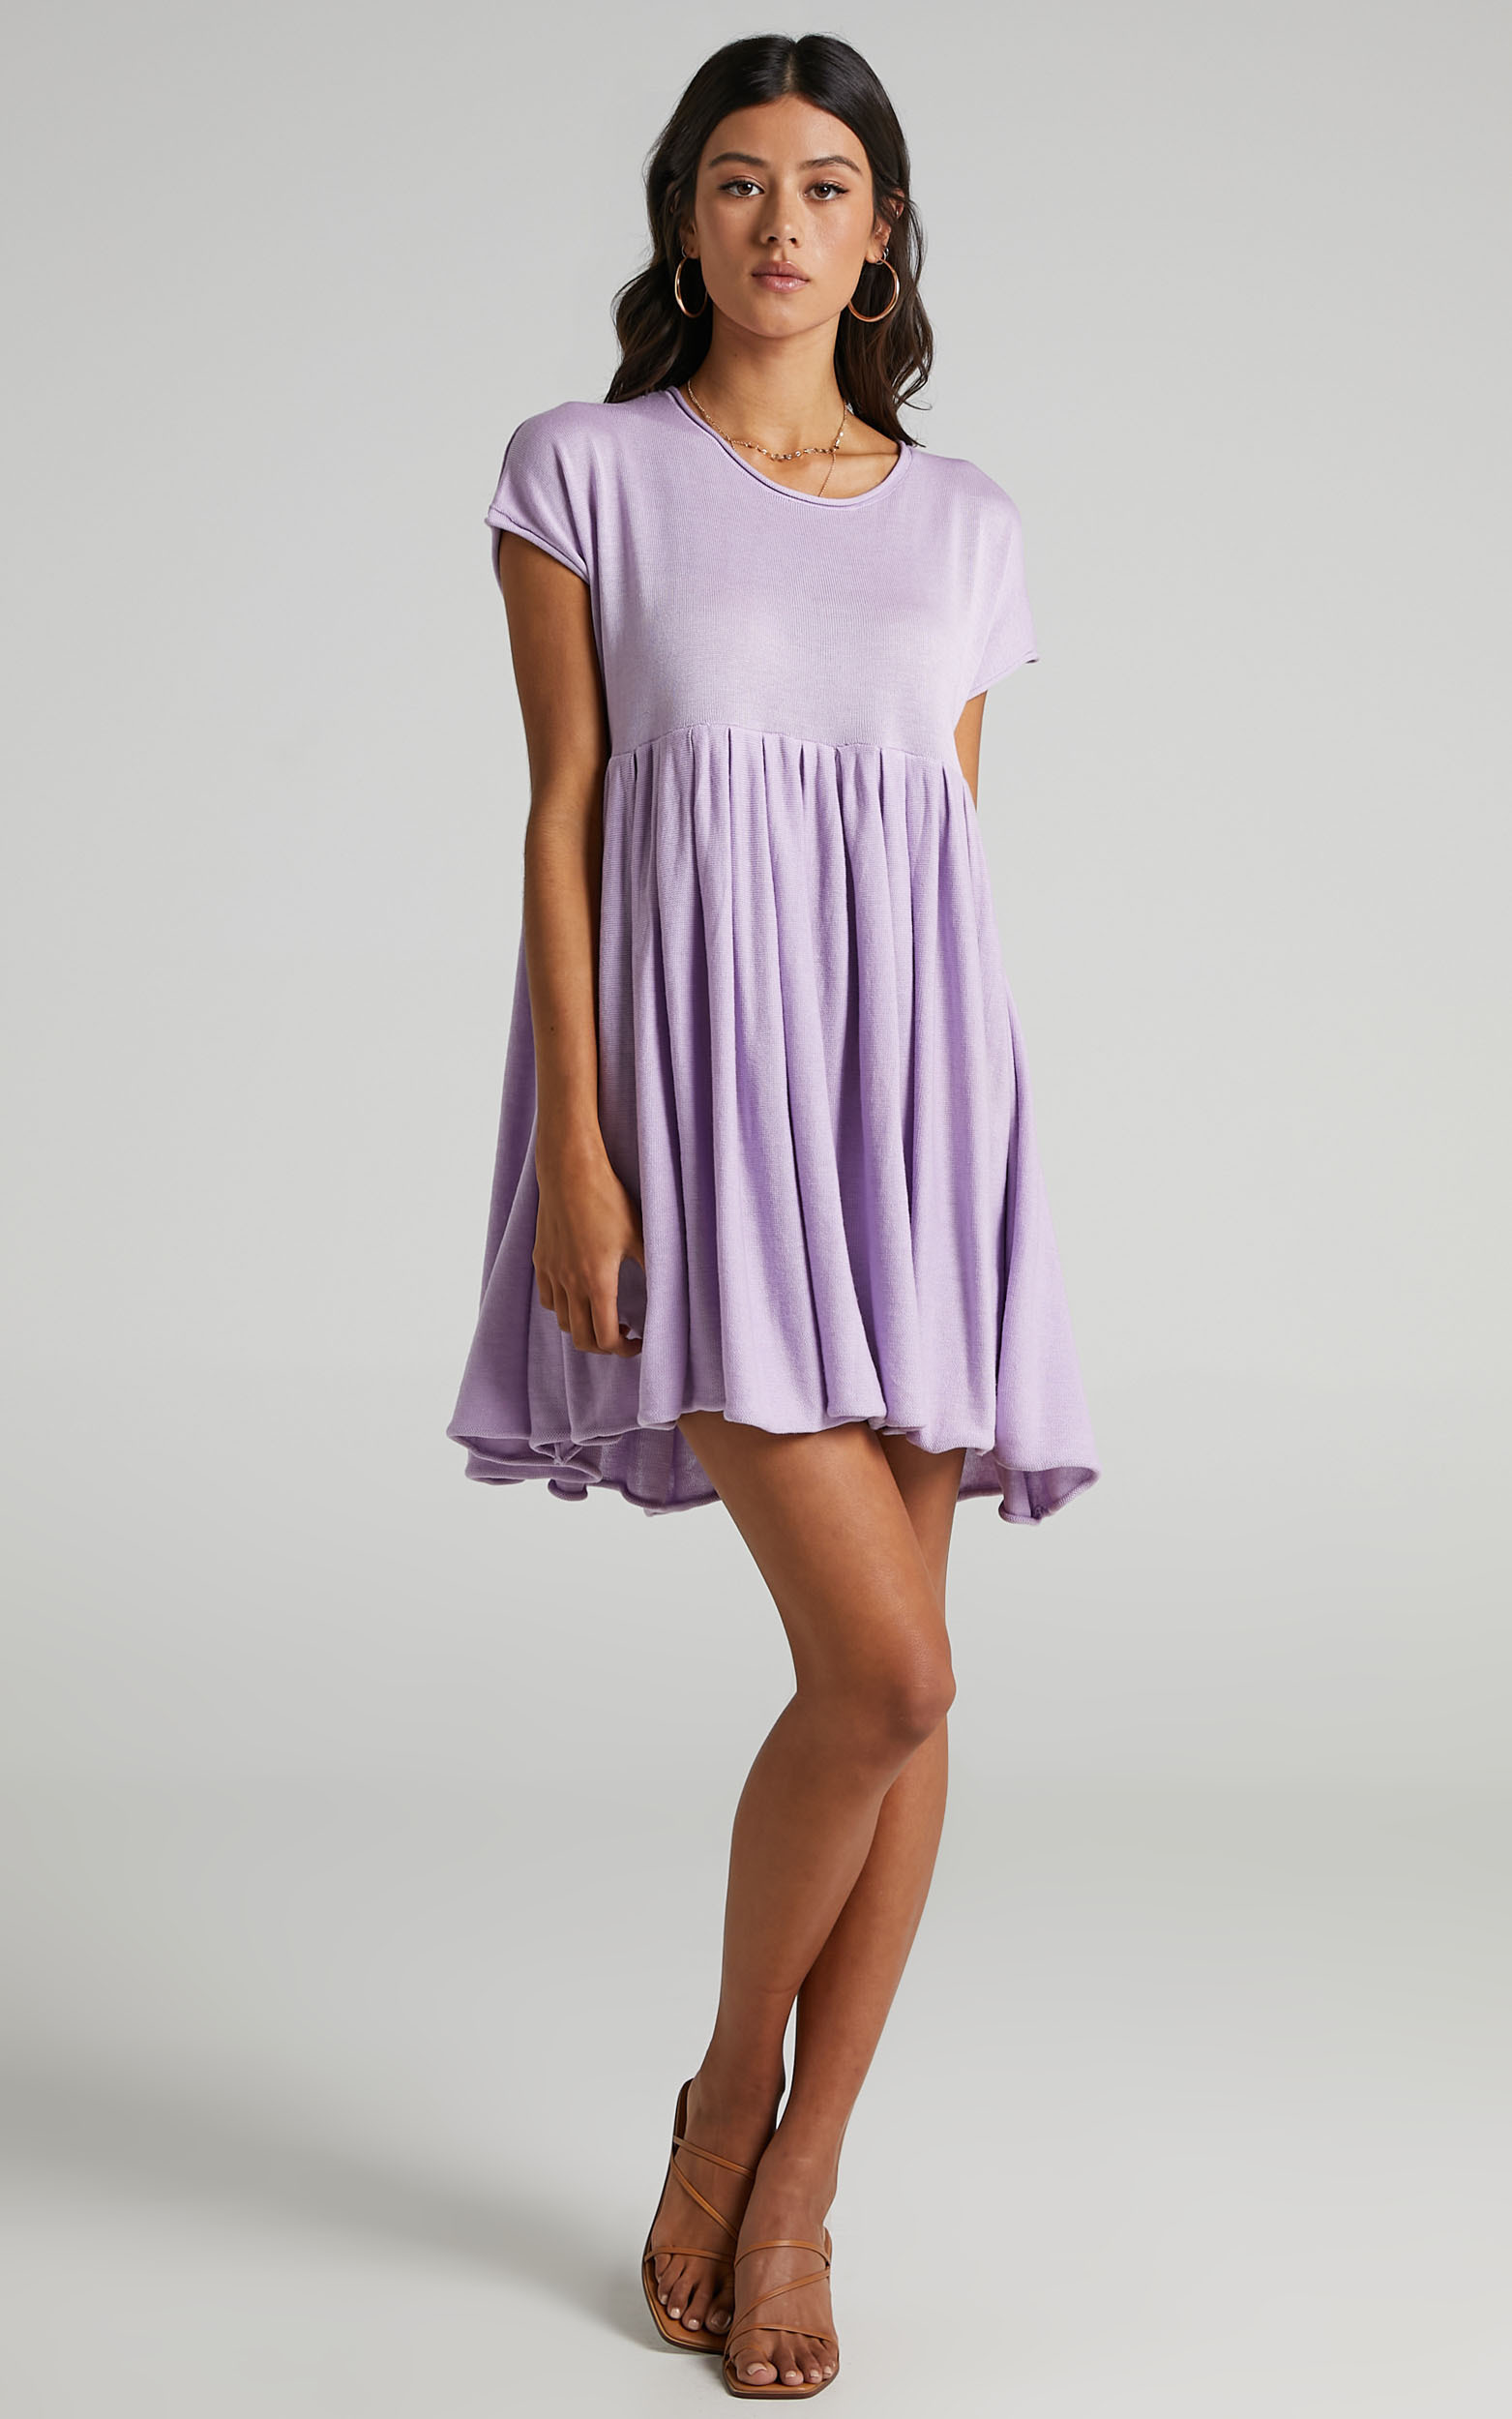 Embry Knit Dress in Lilac - 06, PRP2, hi-res image number null